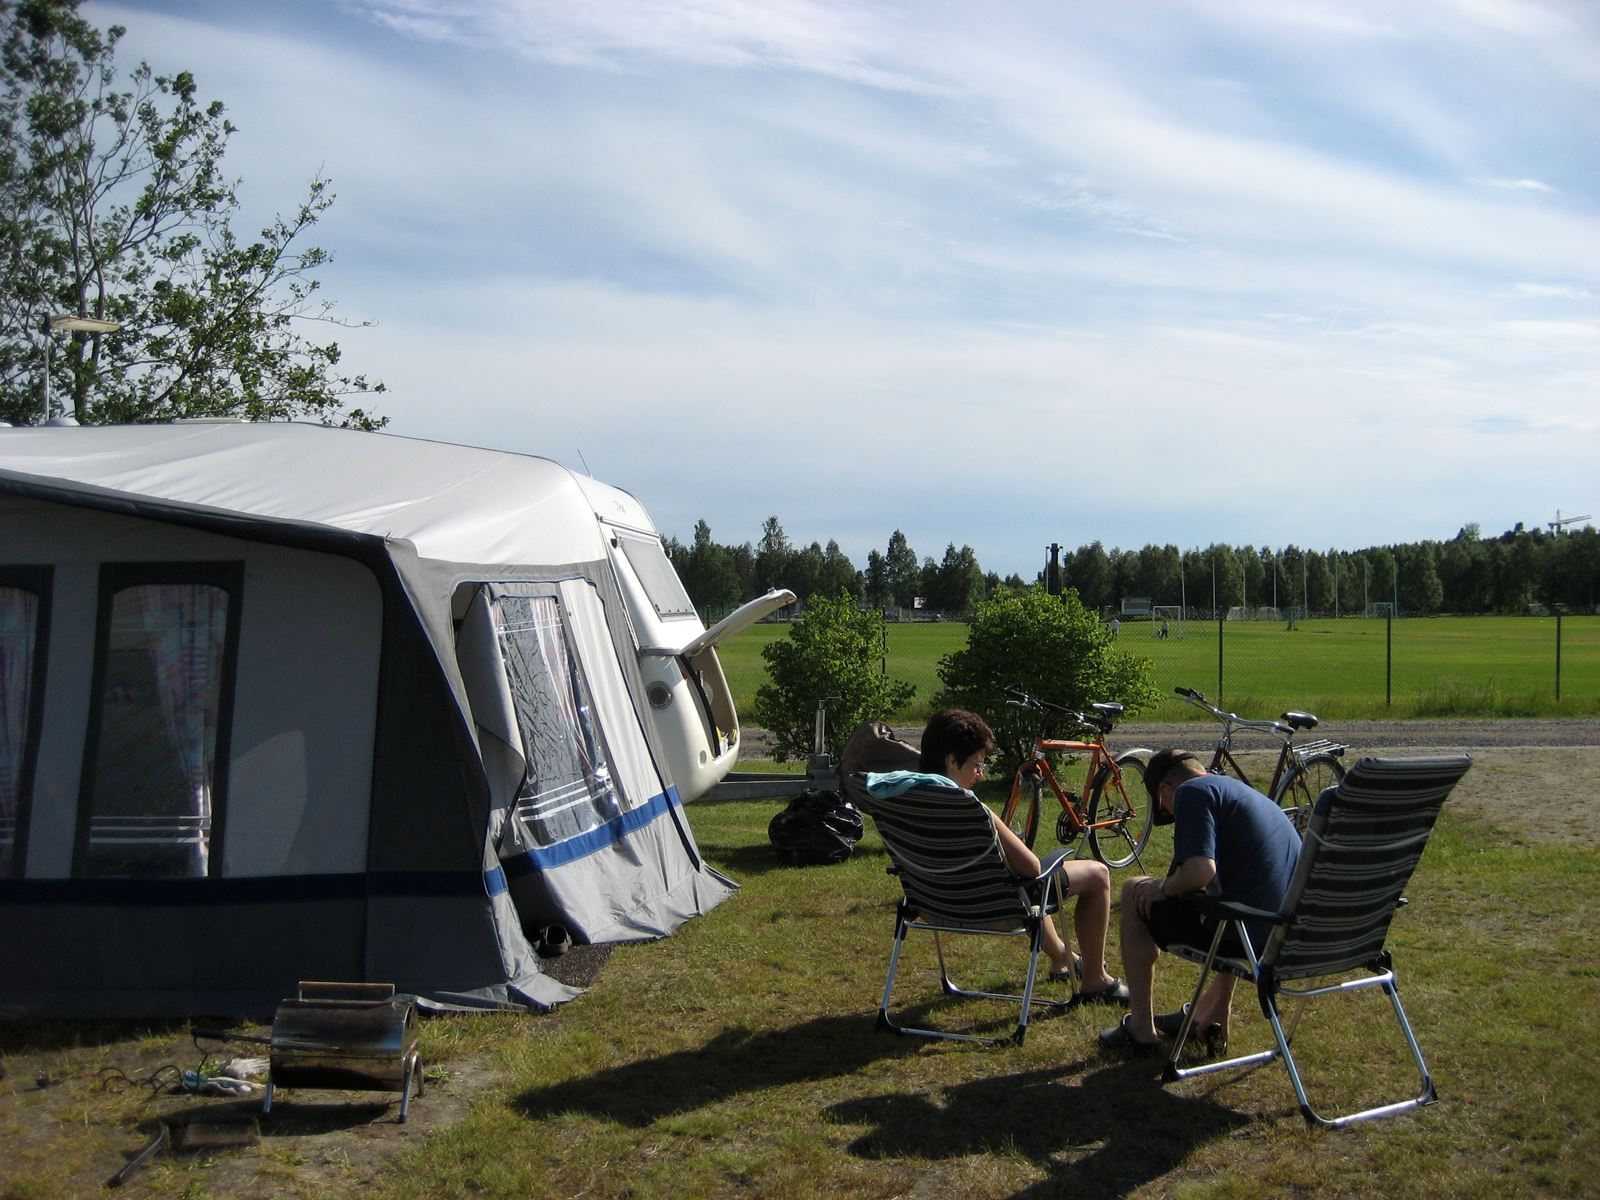 First Camp Umeå/Camping